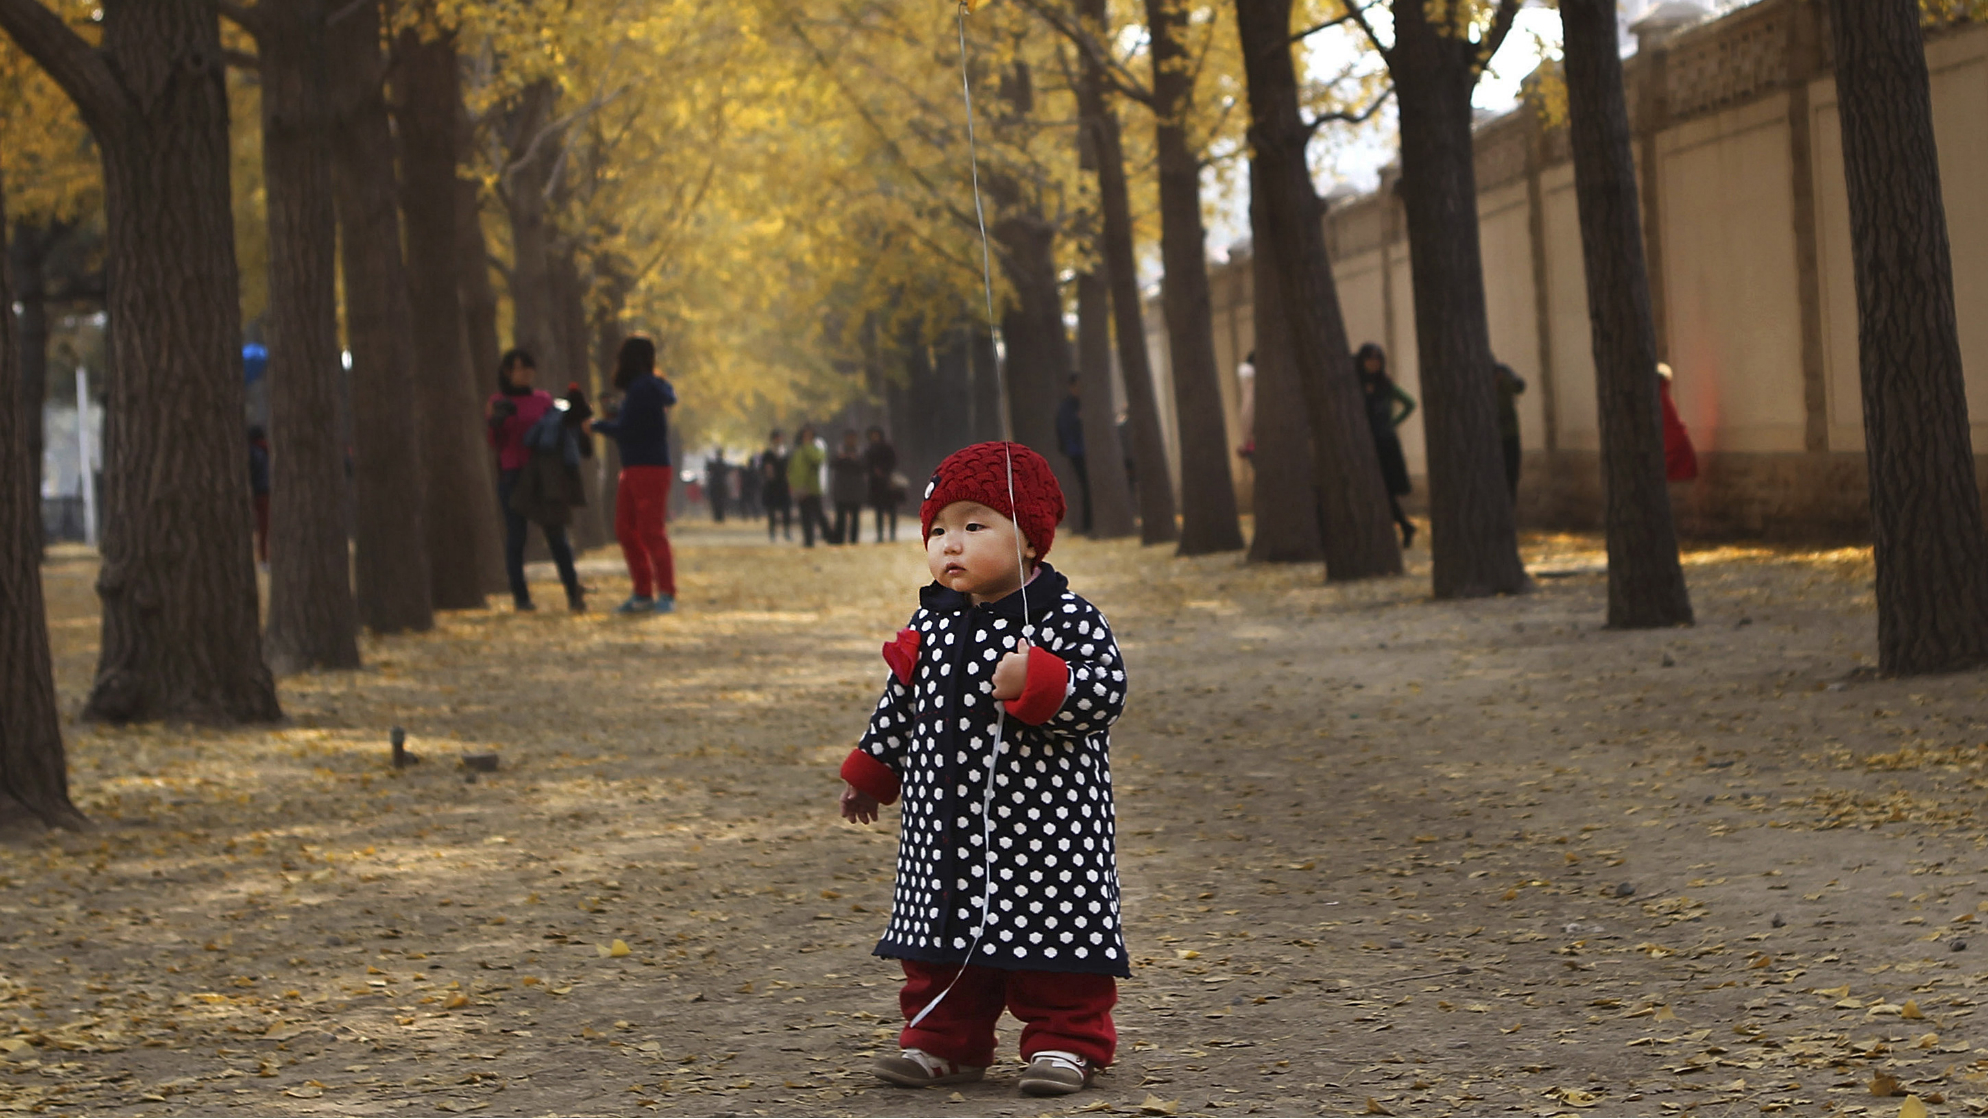 One-year-old Qiqi holds a ballon on a street outside Diaoyutai State Guesthouse in central Beijing, November 8, 2013. REUTERS/China Daily